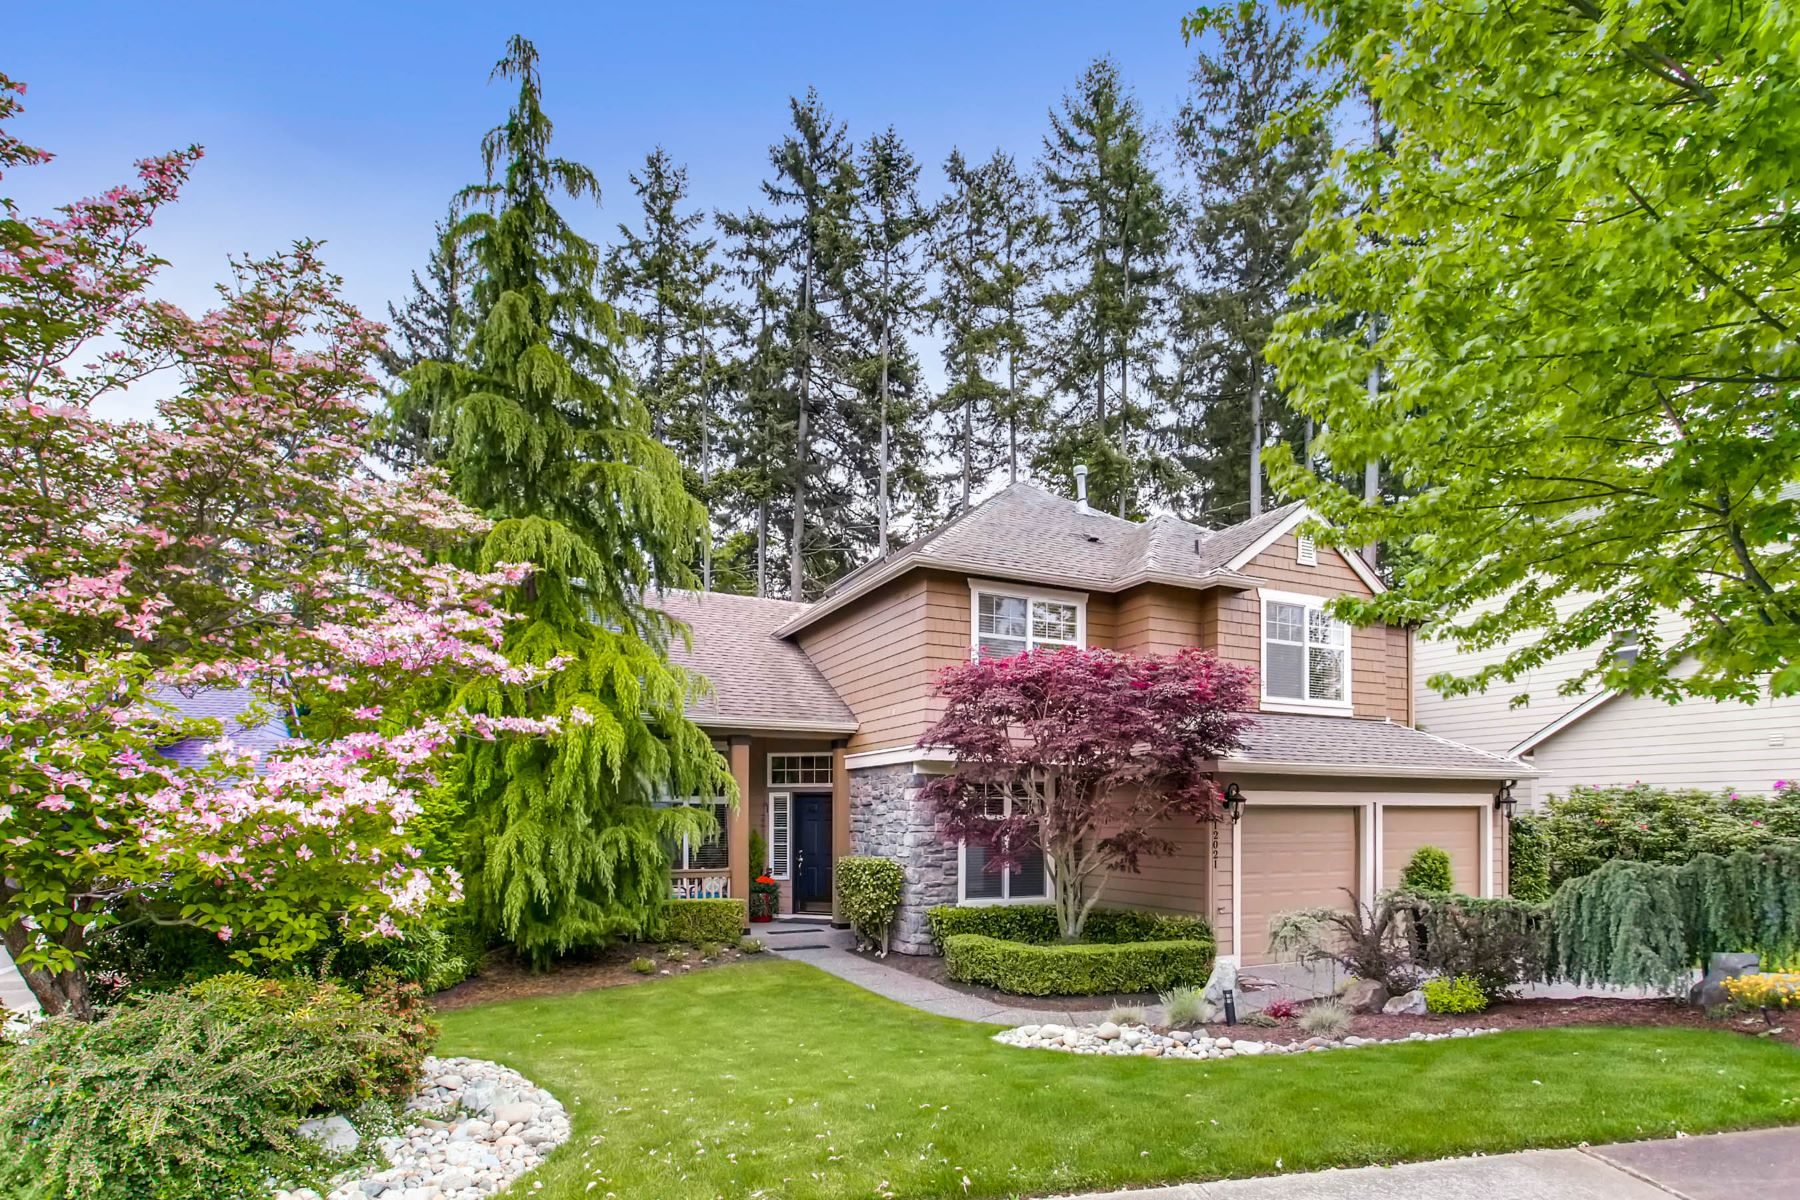 Single Family Home for Sale at Immaculate Mukilteo Golf Estate 12021 Clubhouse Lane Mukilteo, Washington 98275 United States